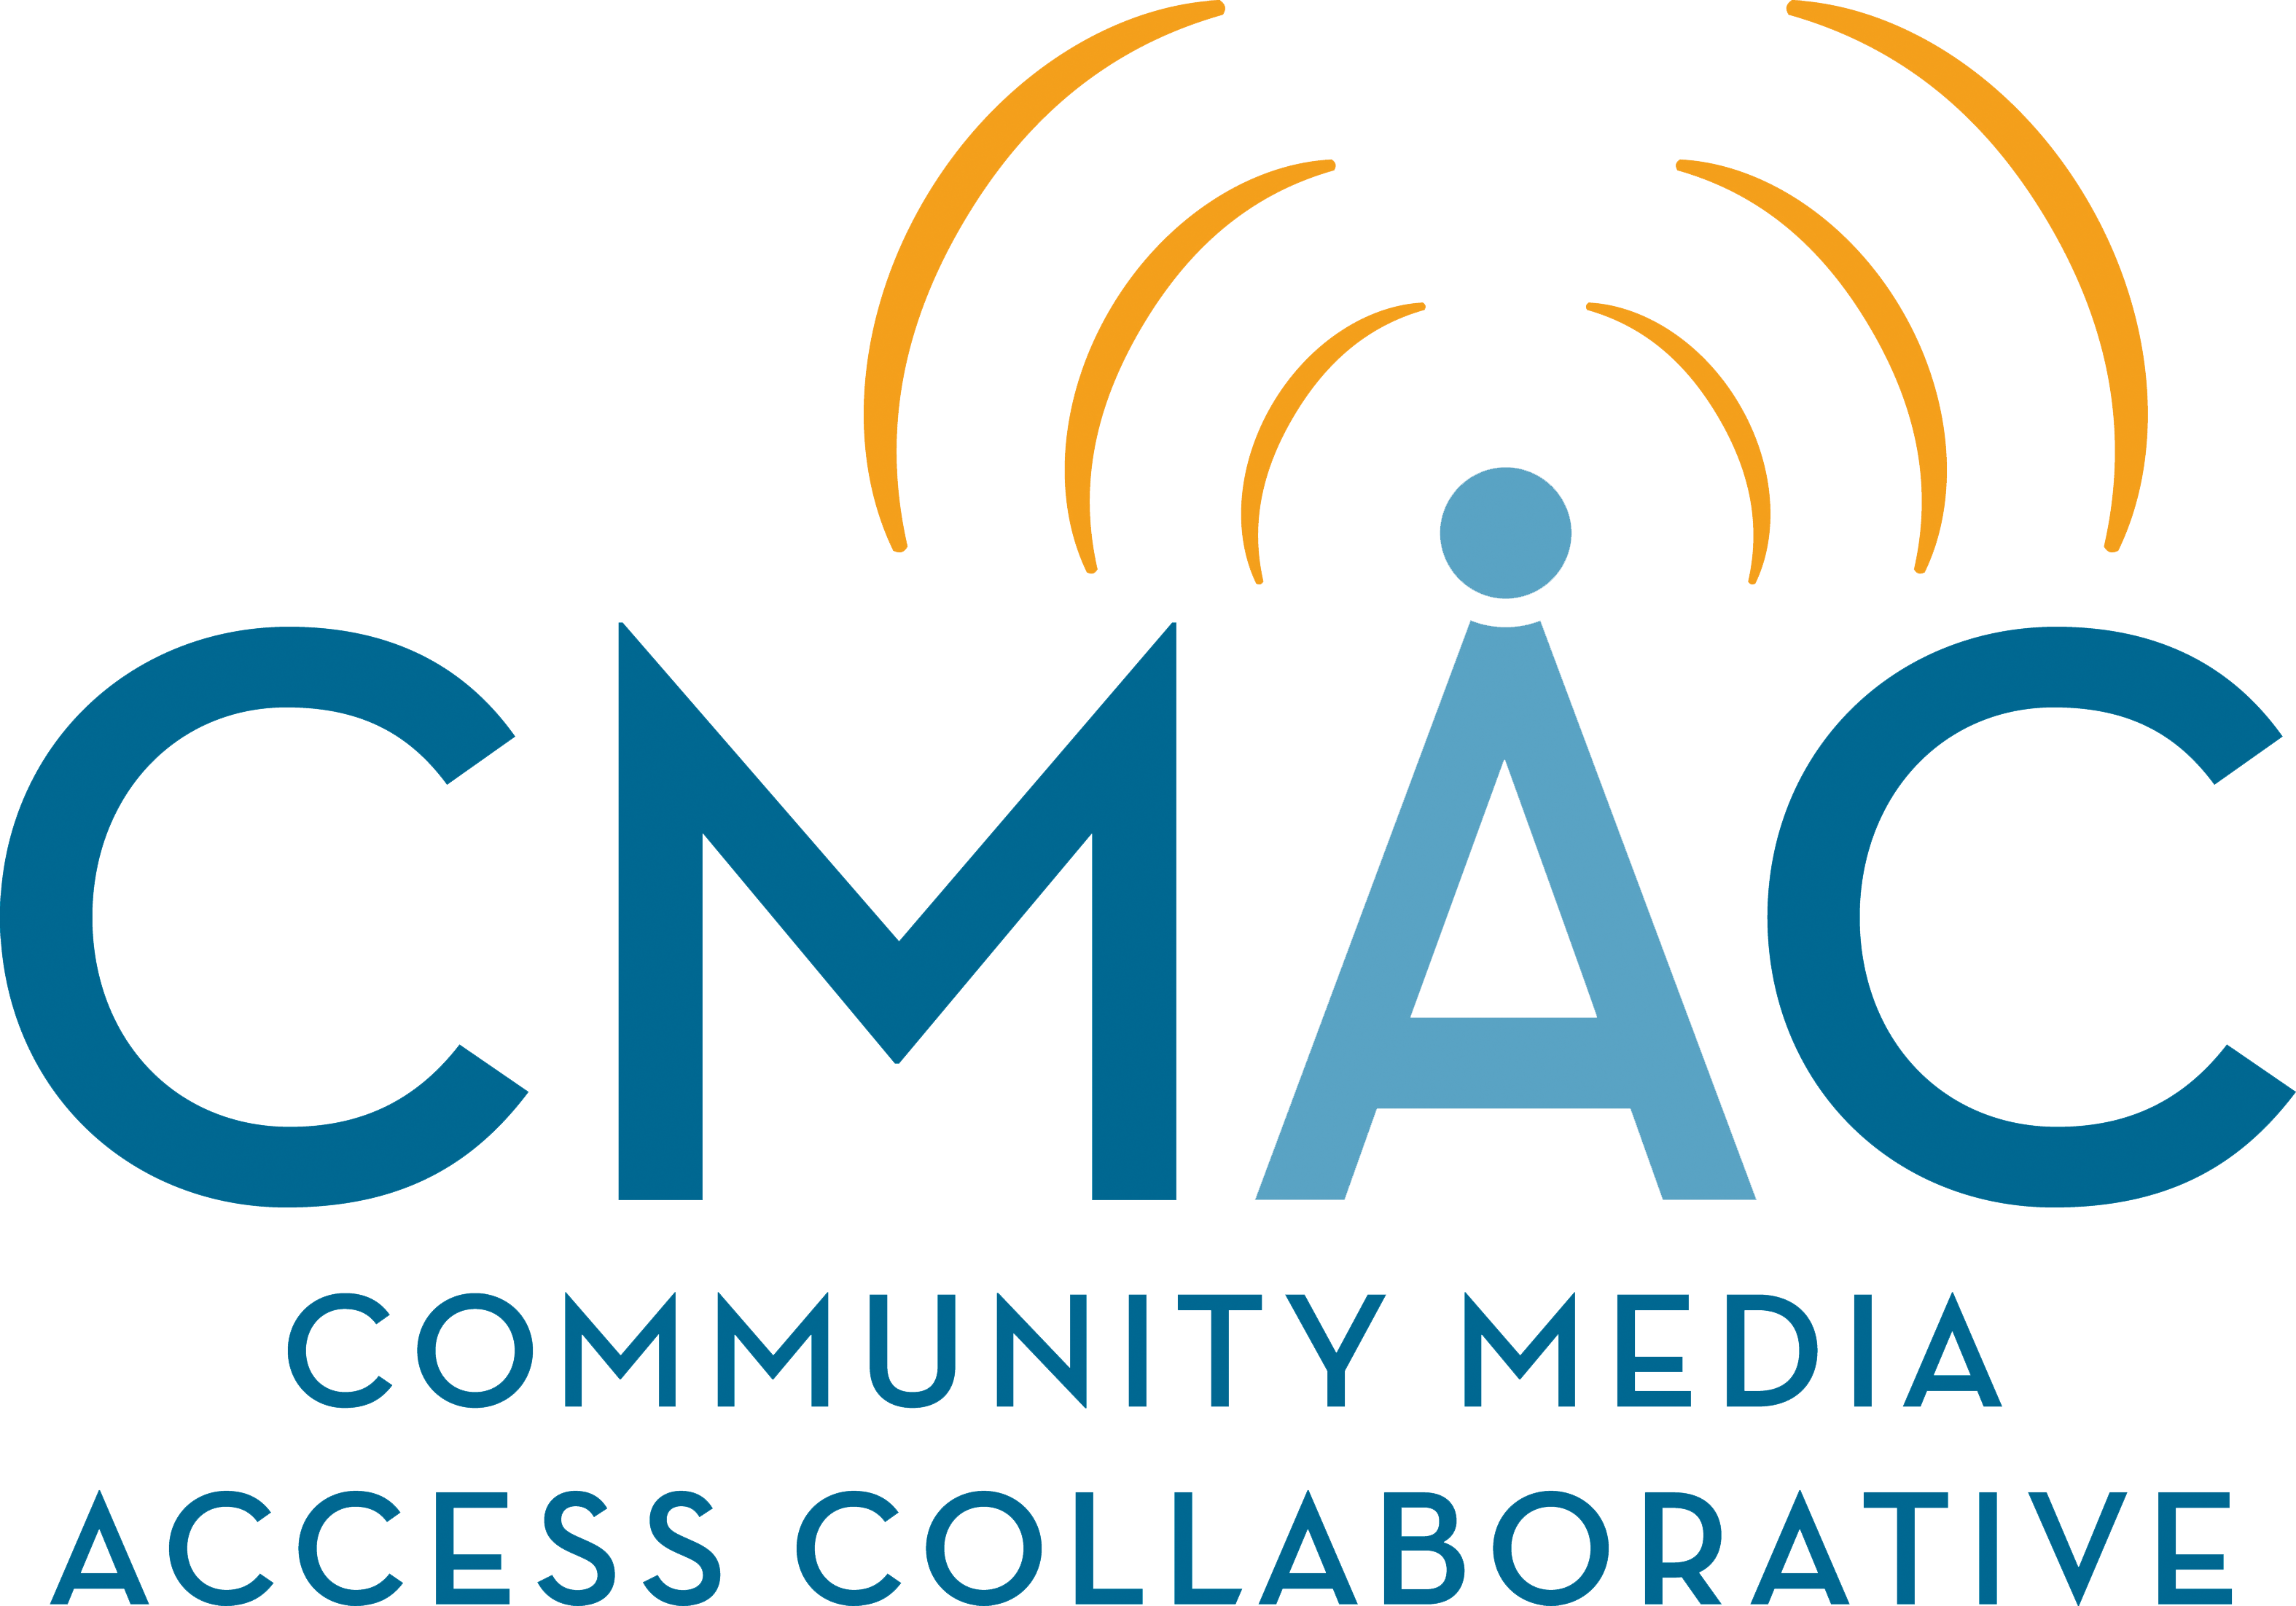 Community Media Access Collaborative